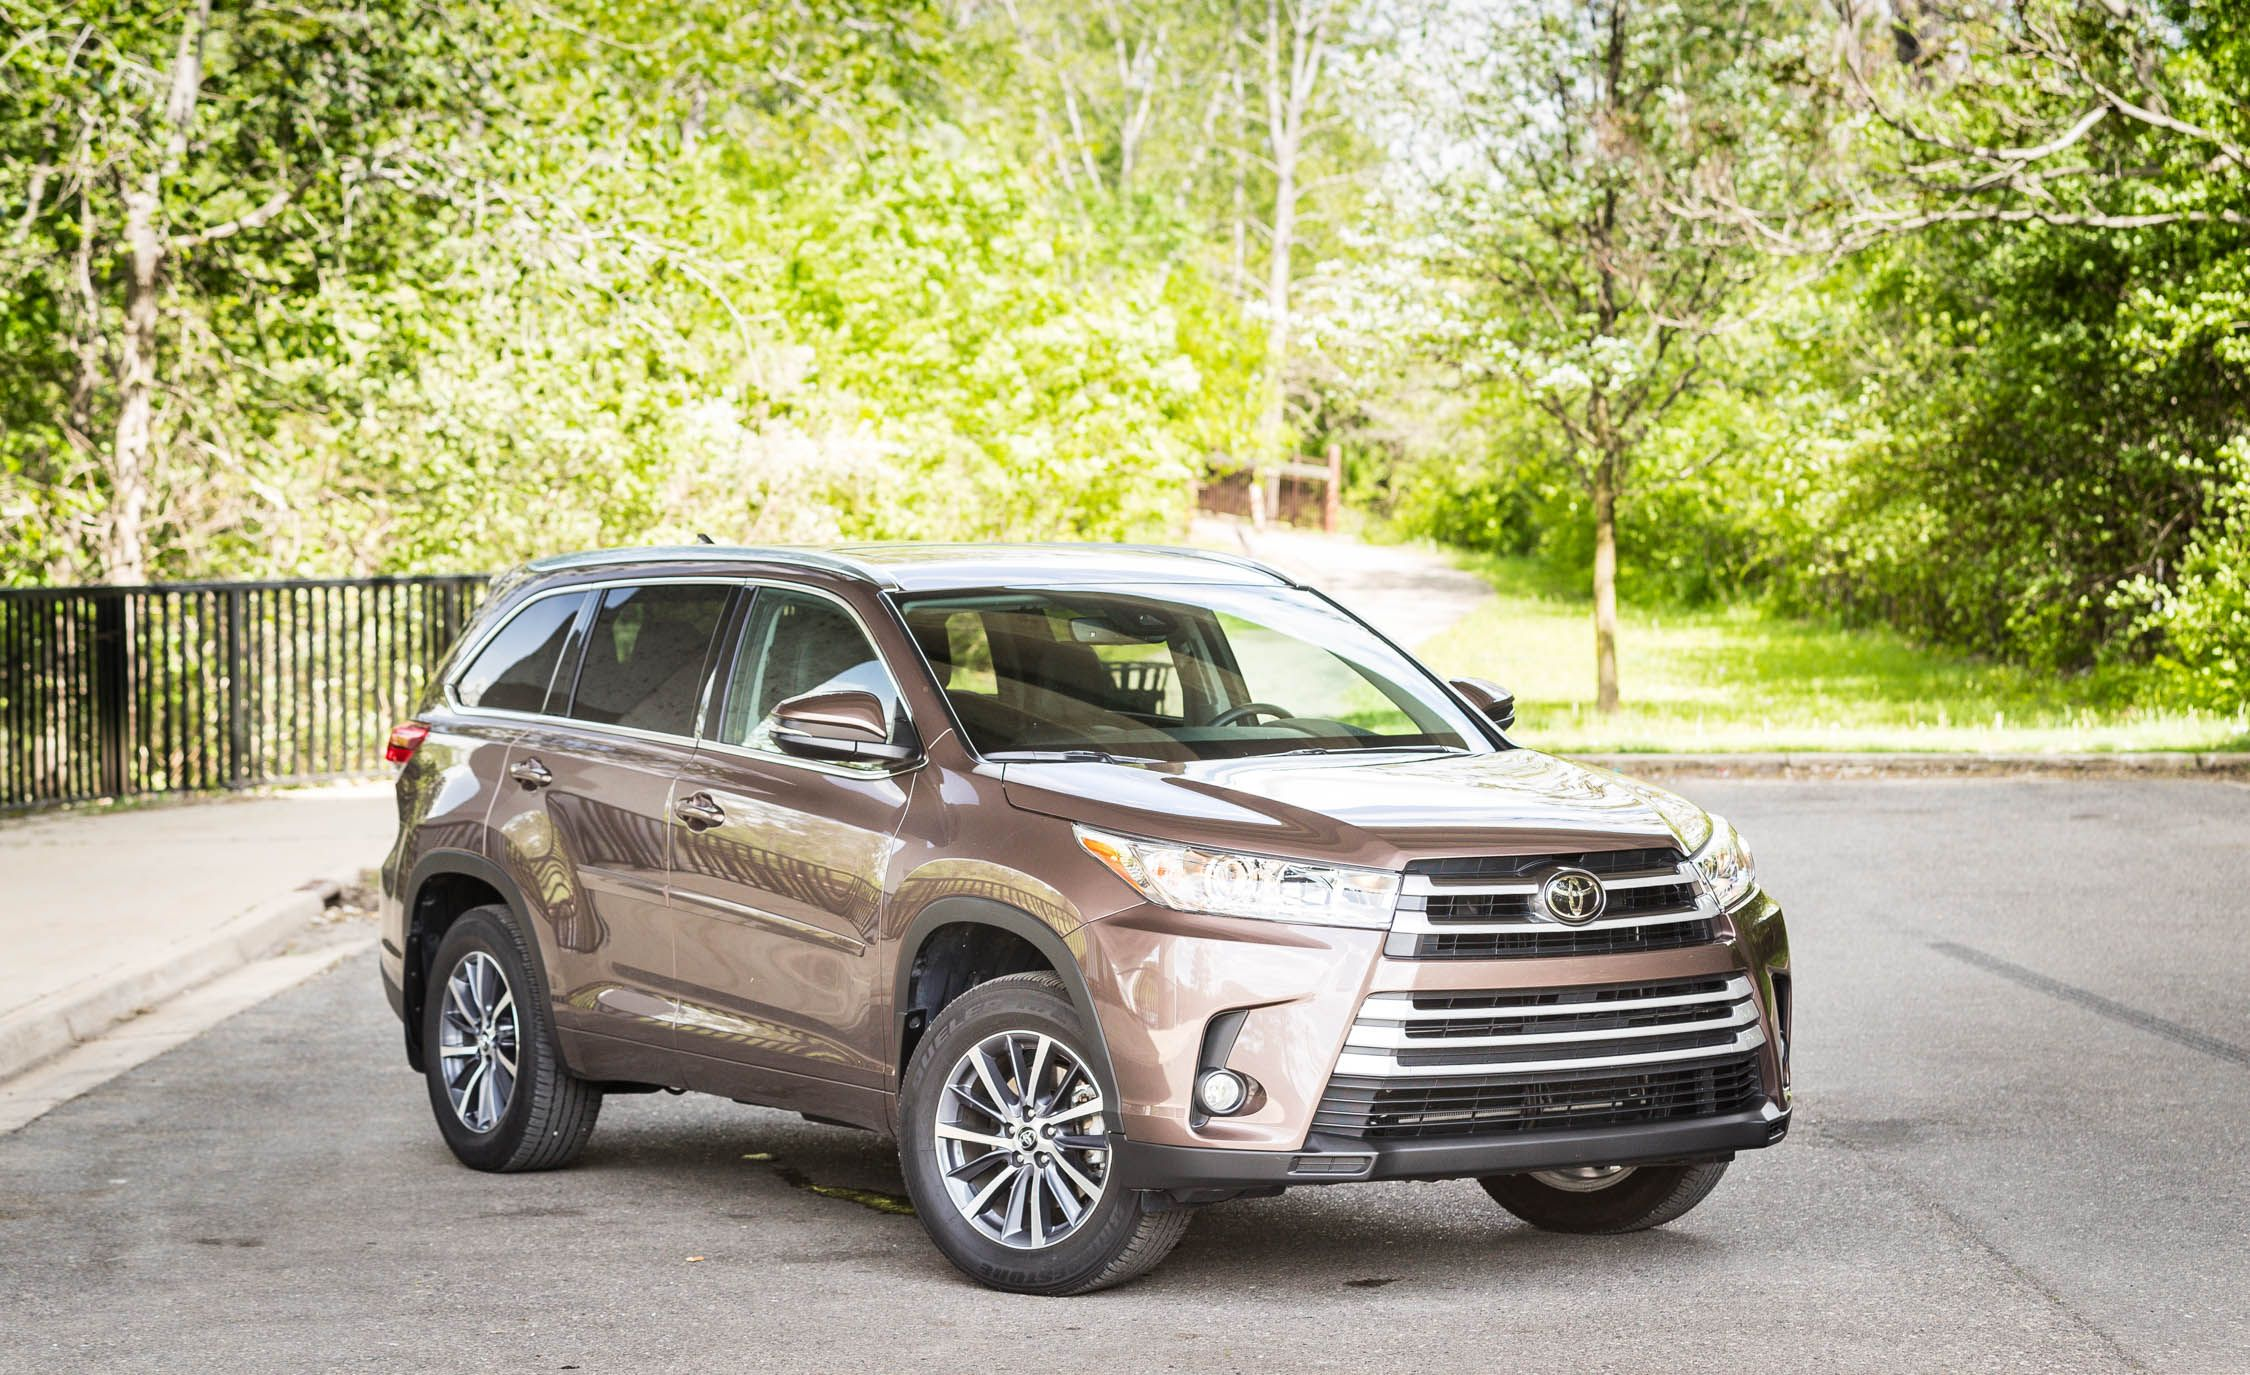 2017 Toyota Highlander Hybrid Awd Test Review Car And Driver Engine Diagram For 2013